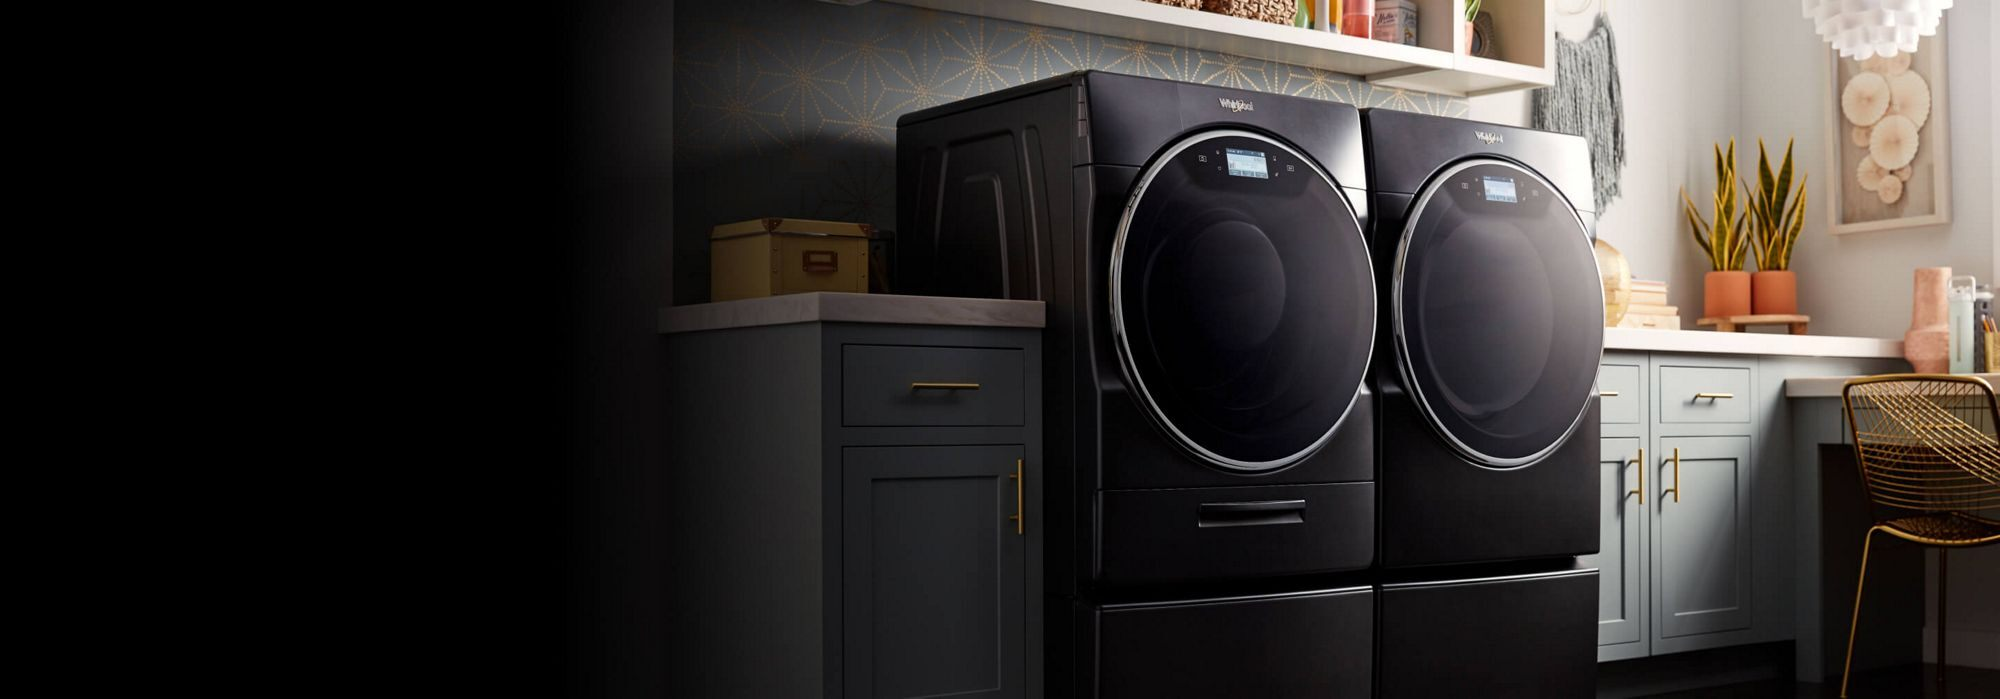 Www Whirlpool Com >> Washers Compare Washing Machines Whirlpool